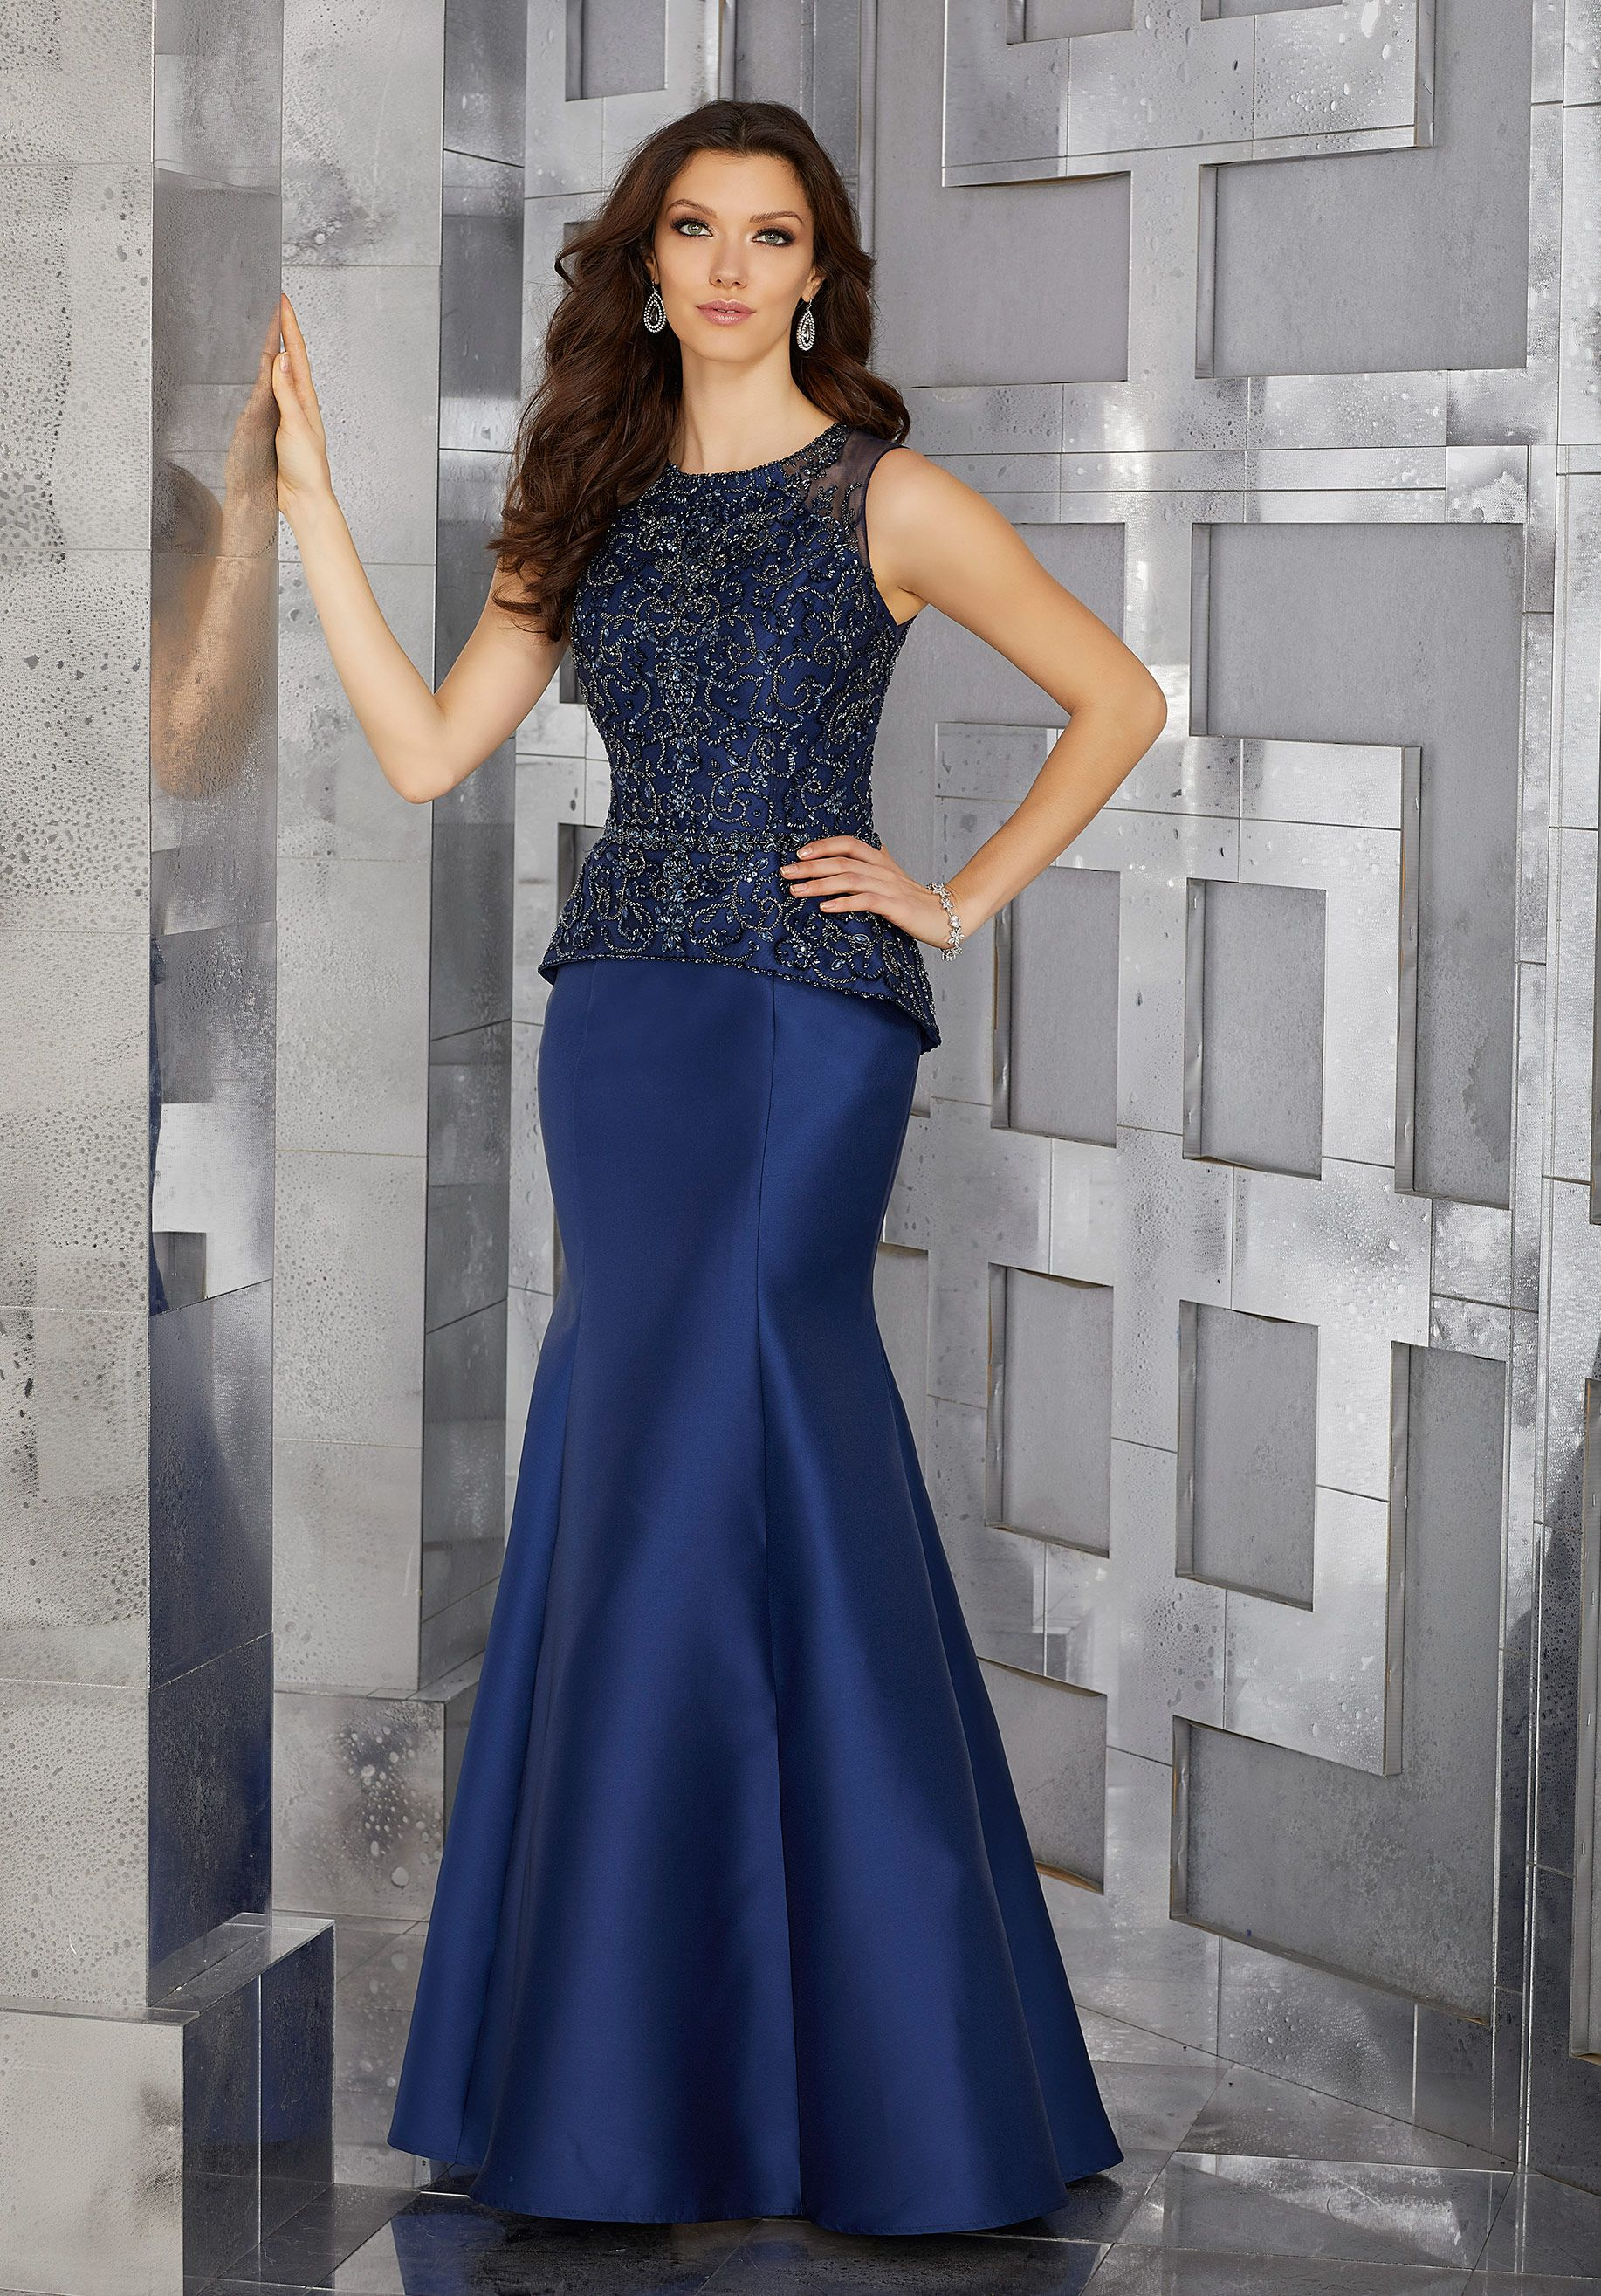 Mock twopiece special occasion gown with intricately beaded bodice